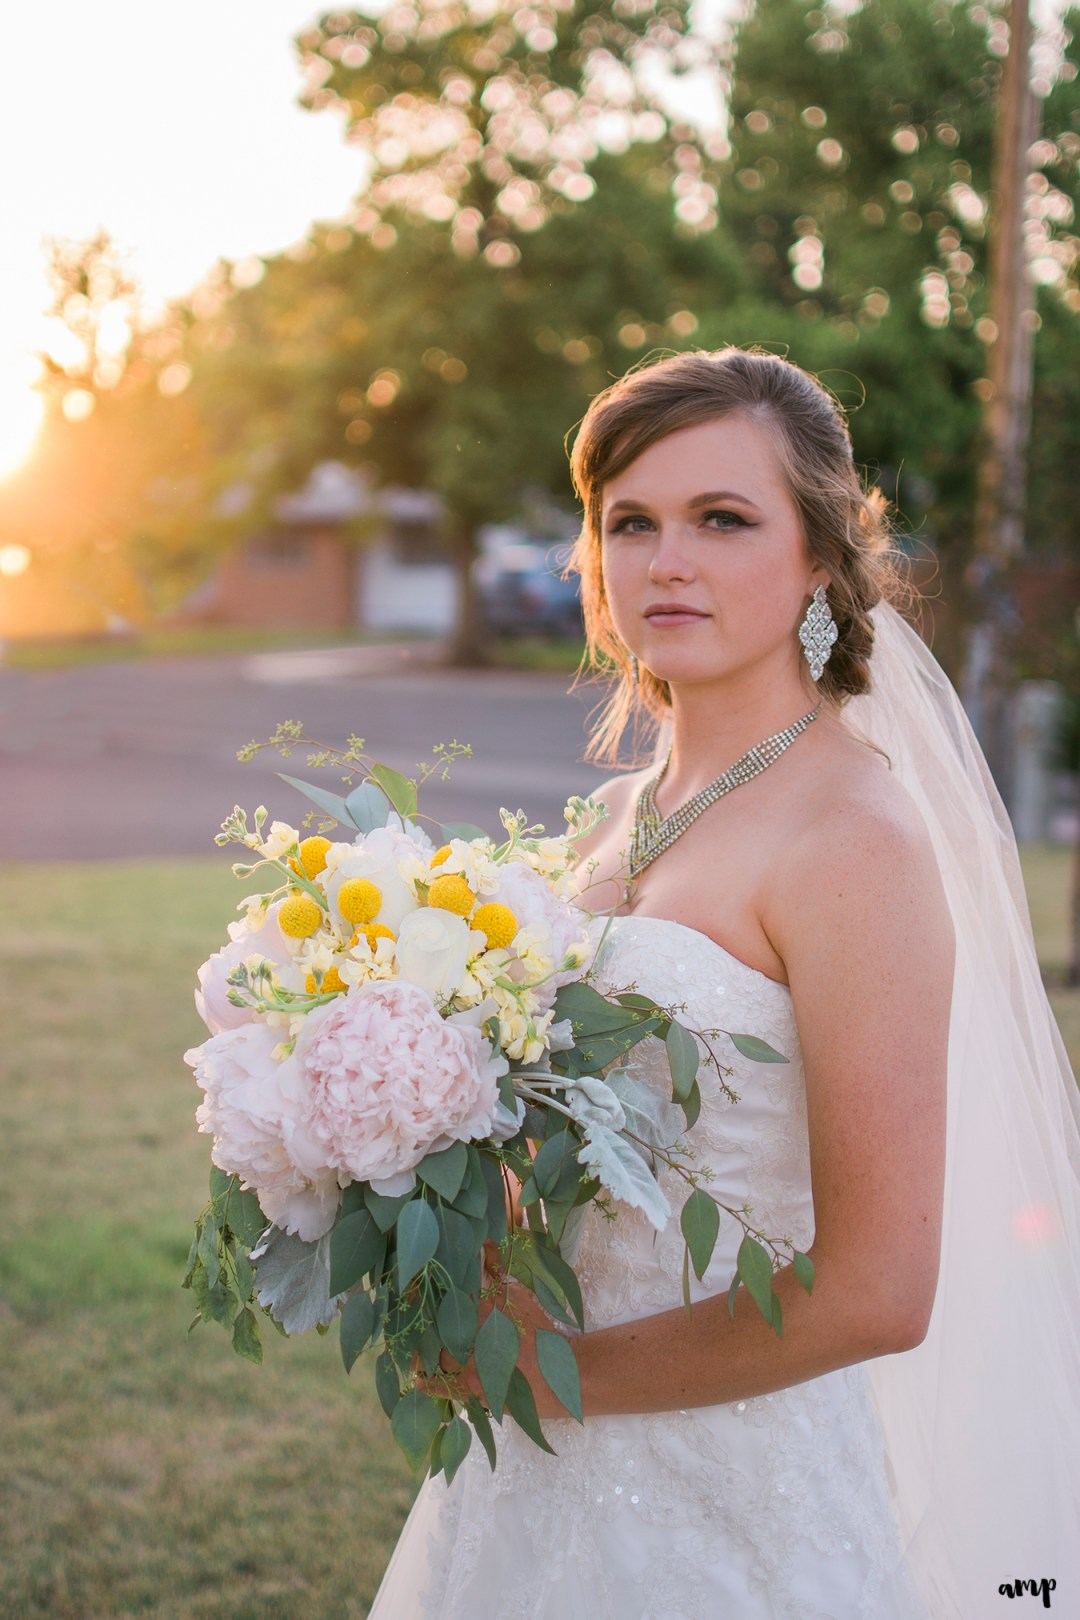 Bridal portraits by amanda.matilda.photography